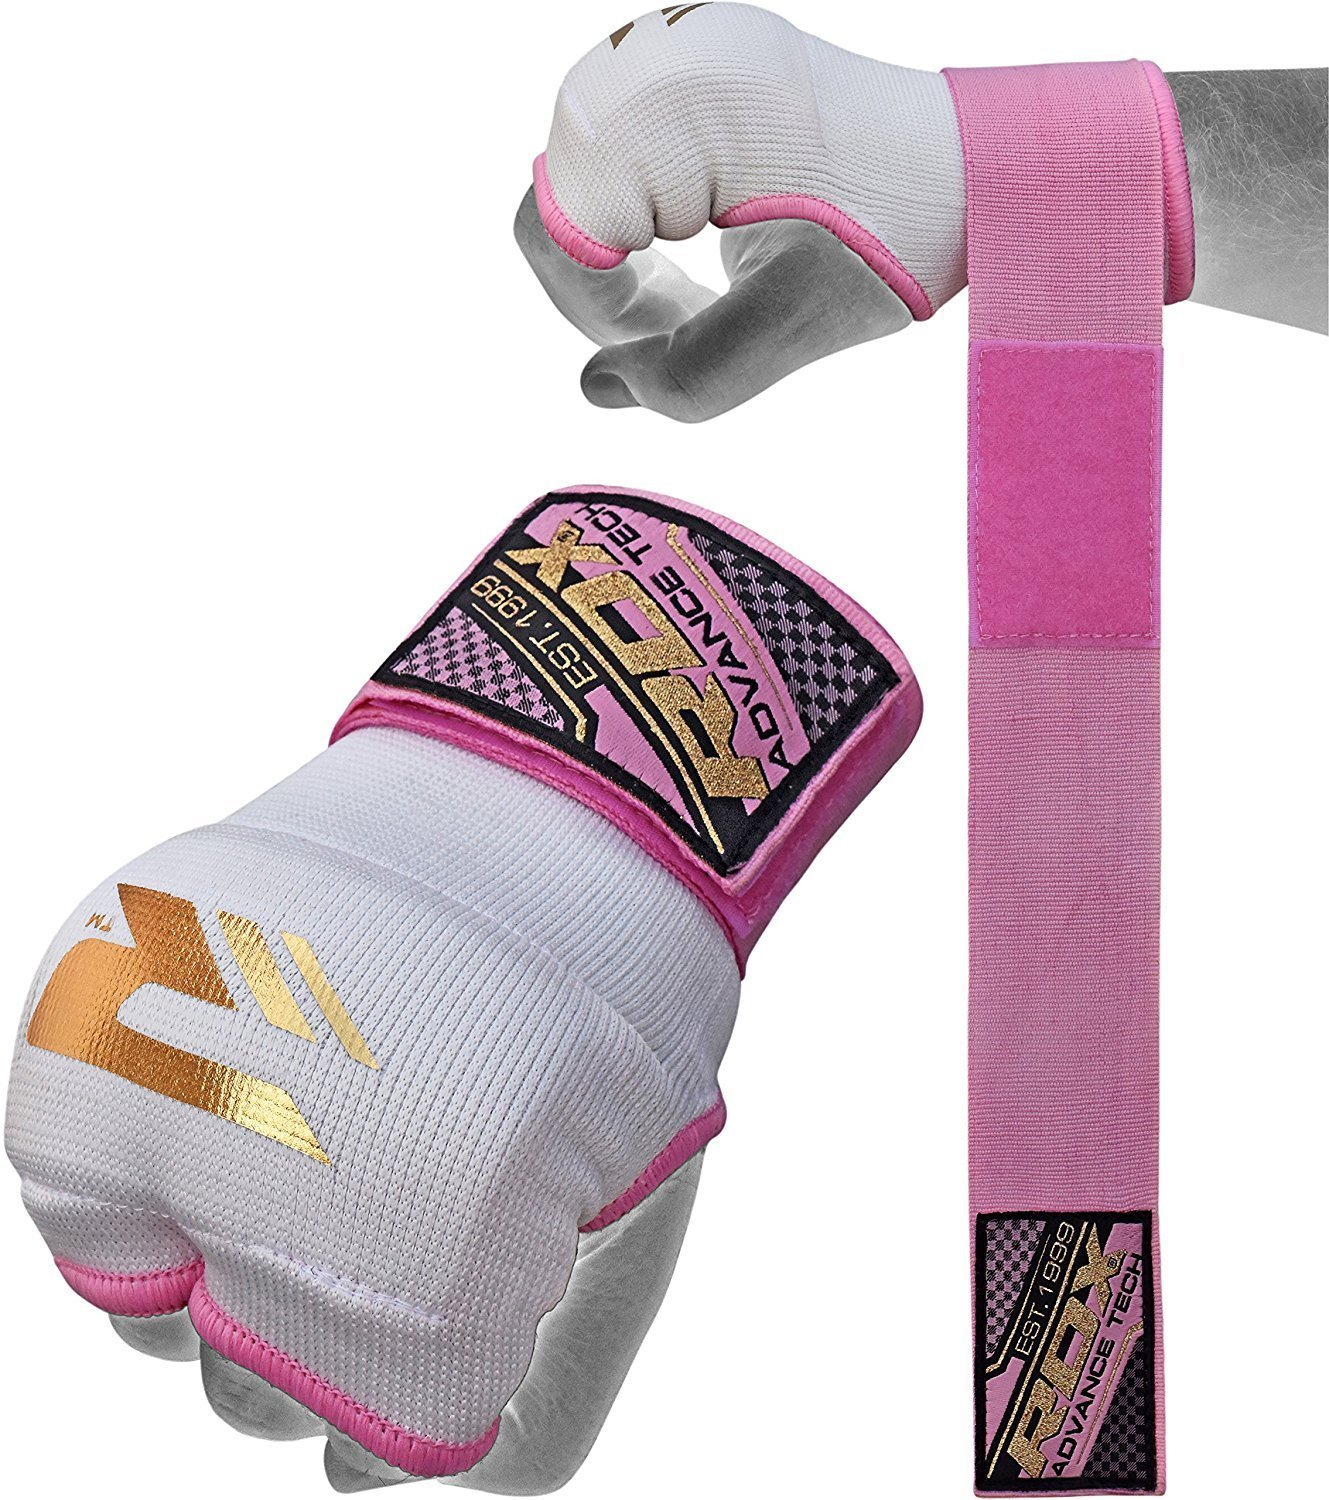 RDX Ladies Training Boxing Inner Gloves Hand Wraps MMA Fist Protector Bandages Mitts by RDX